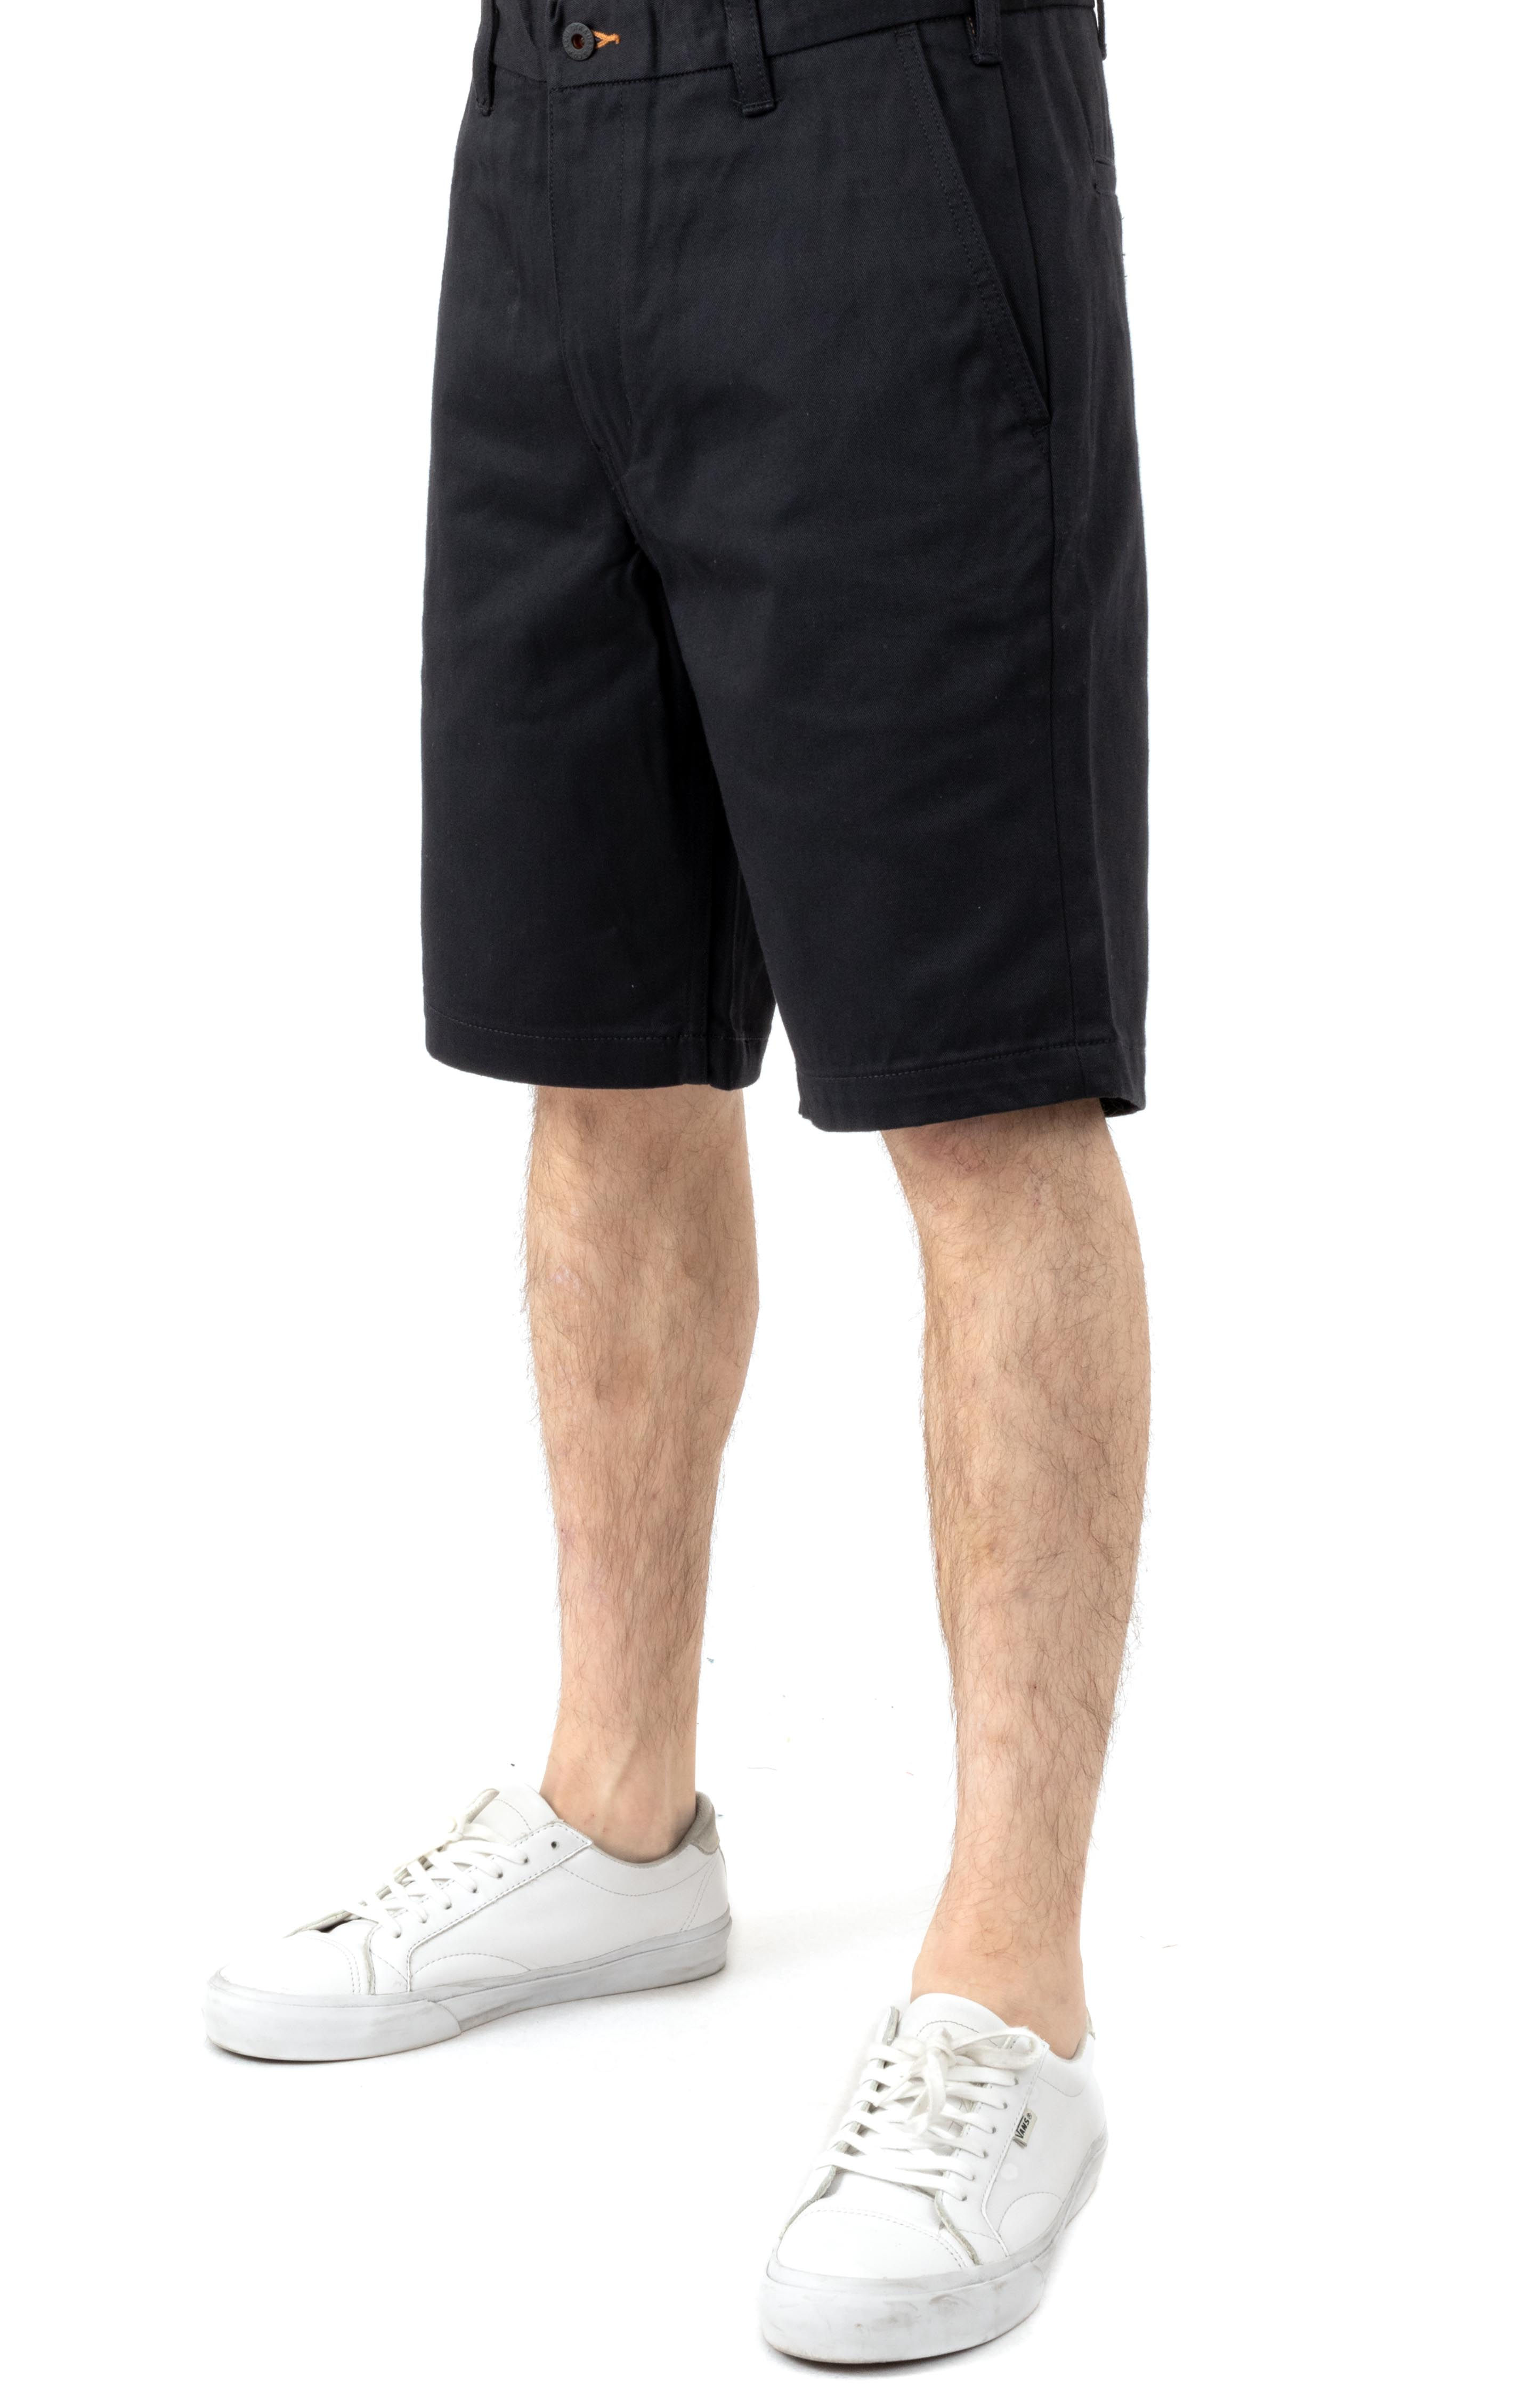 Skate Work Short - Black